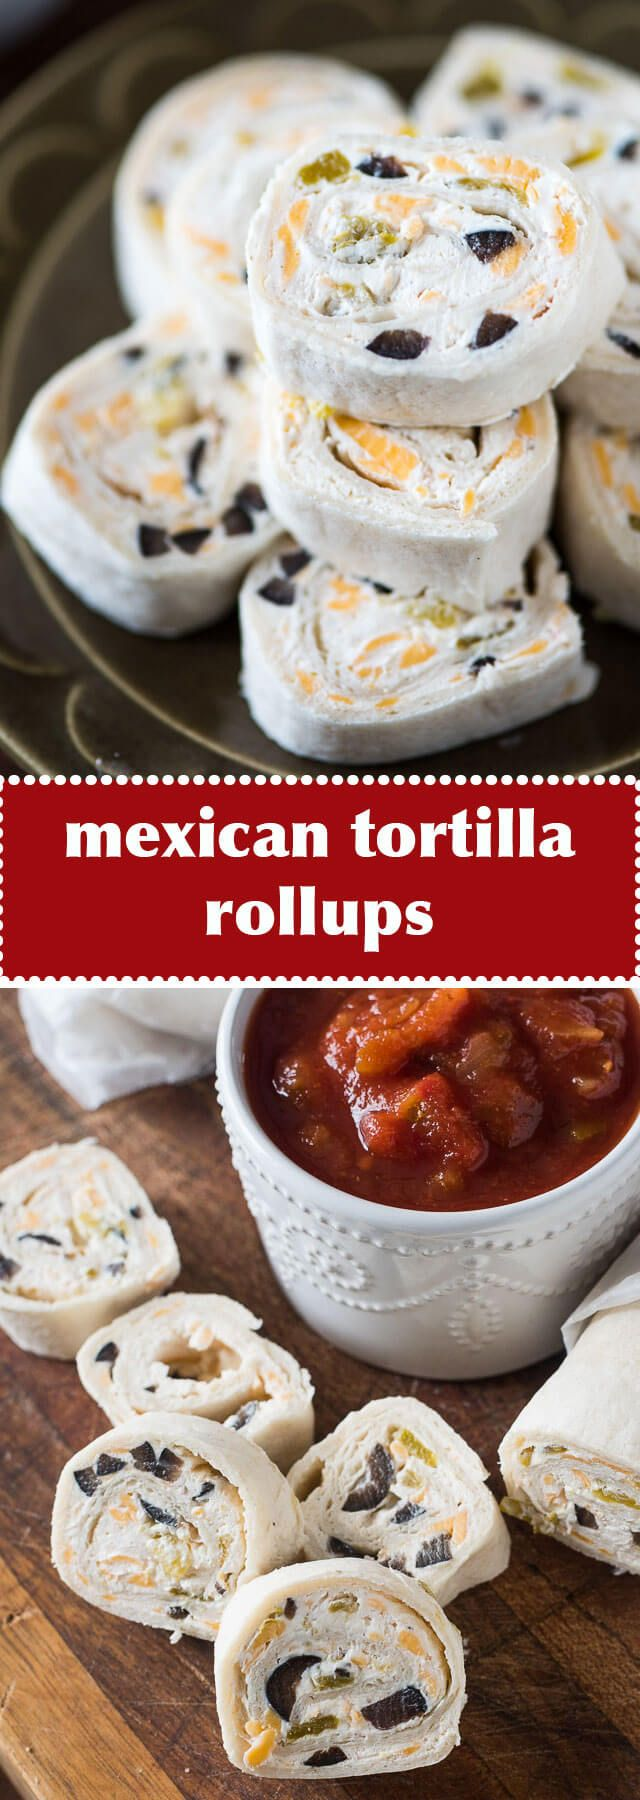 These bite-size Mexican Tortilla Rollups are an easy appetizer to share at a party. Roll up, refrigerate, slice and serve with salsa!